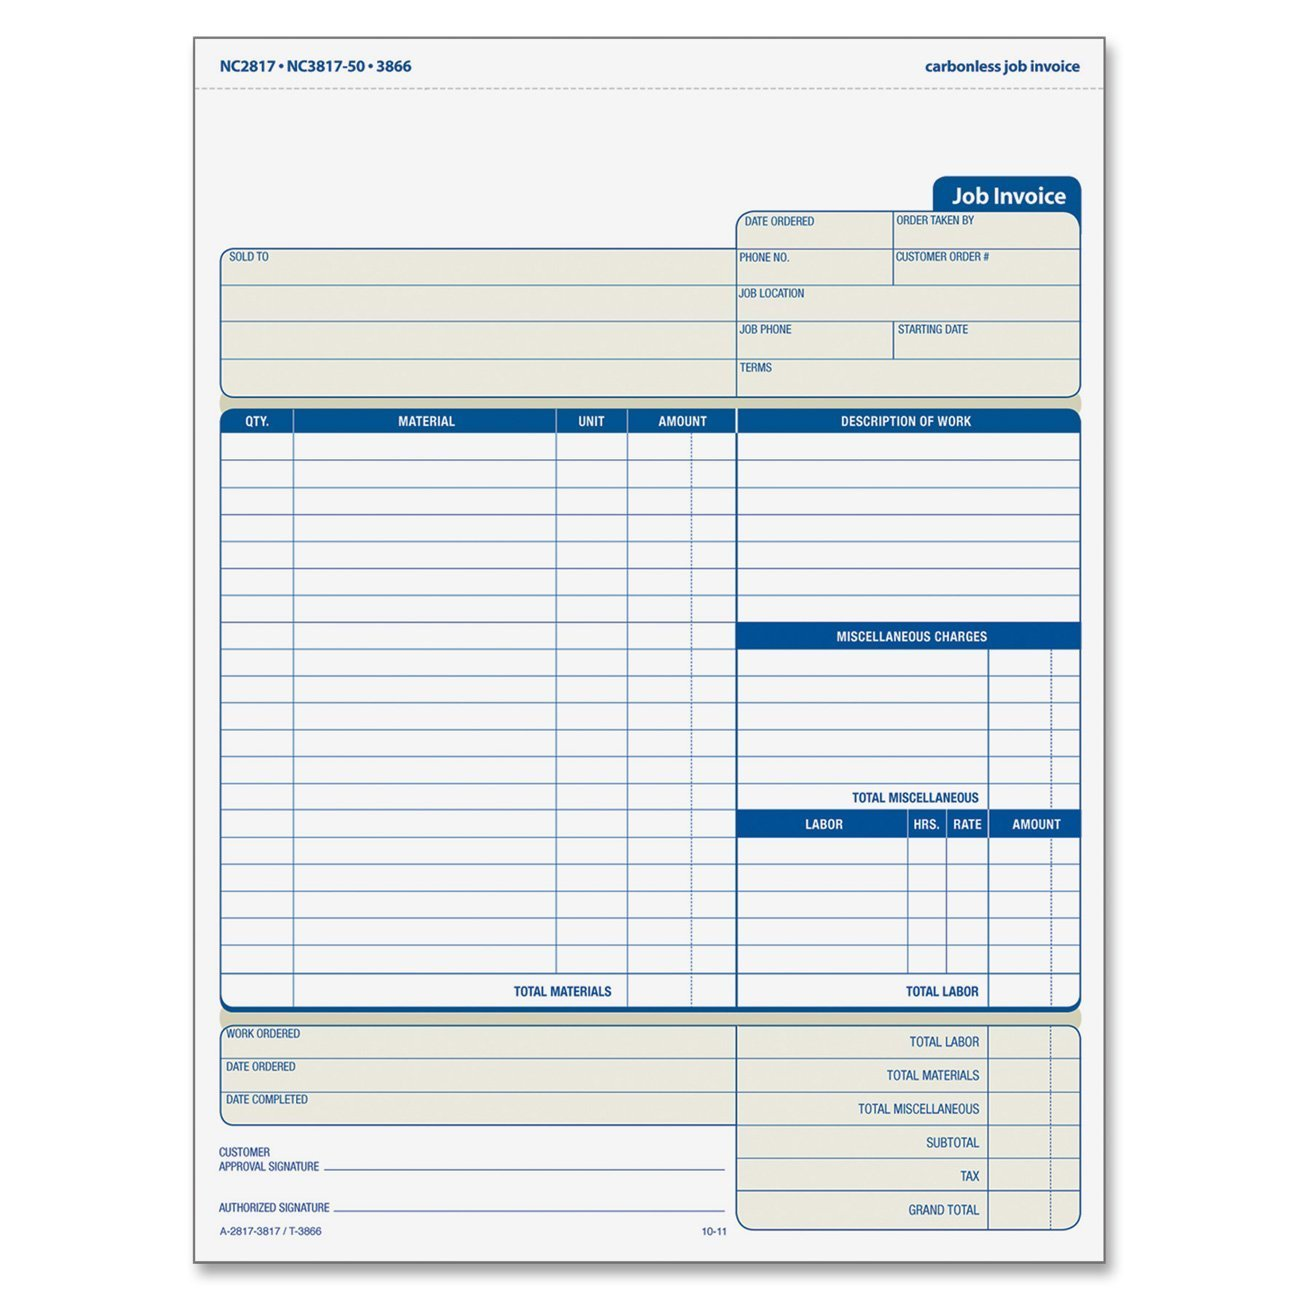 Amazoncom Adams Job Invoice Unit Set X Inch Part - Download free invoice template online fabric store coupon